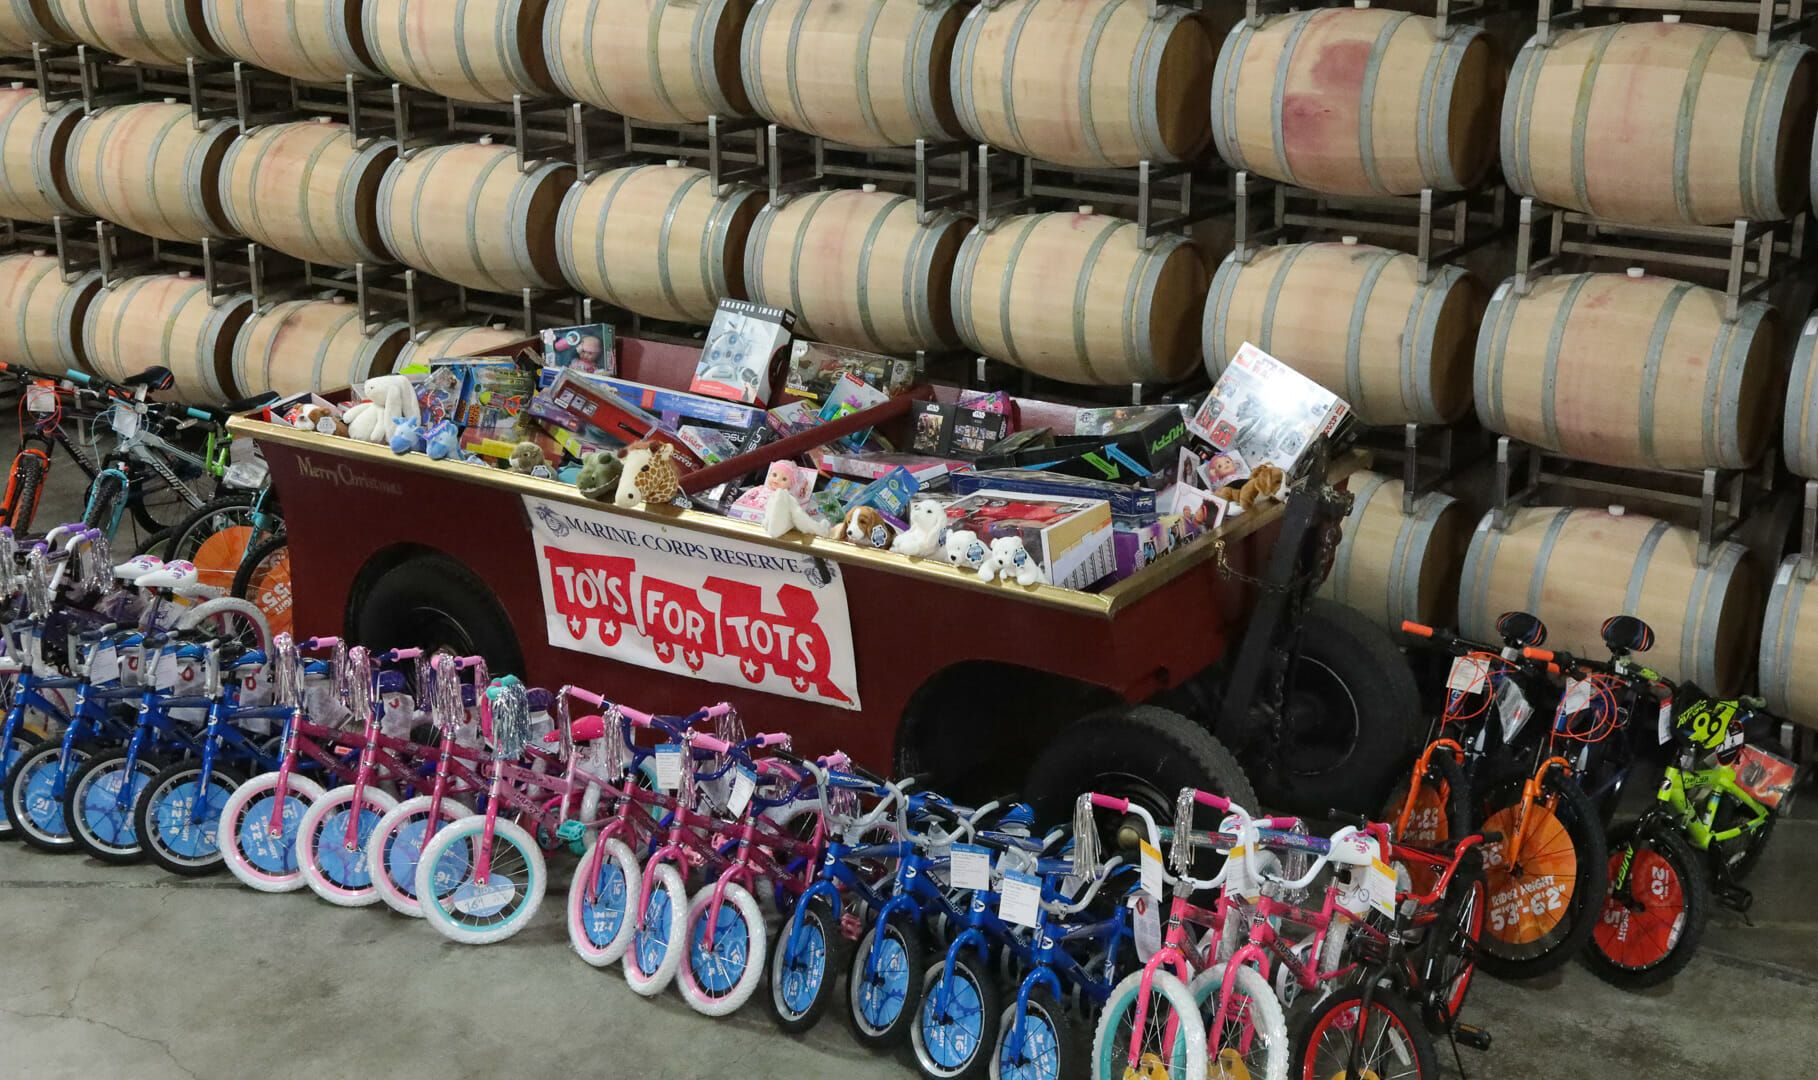 Toys for tots images   Sonoma Toys for Tots Donation Drive Begins at Jordan Winery